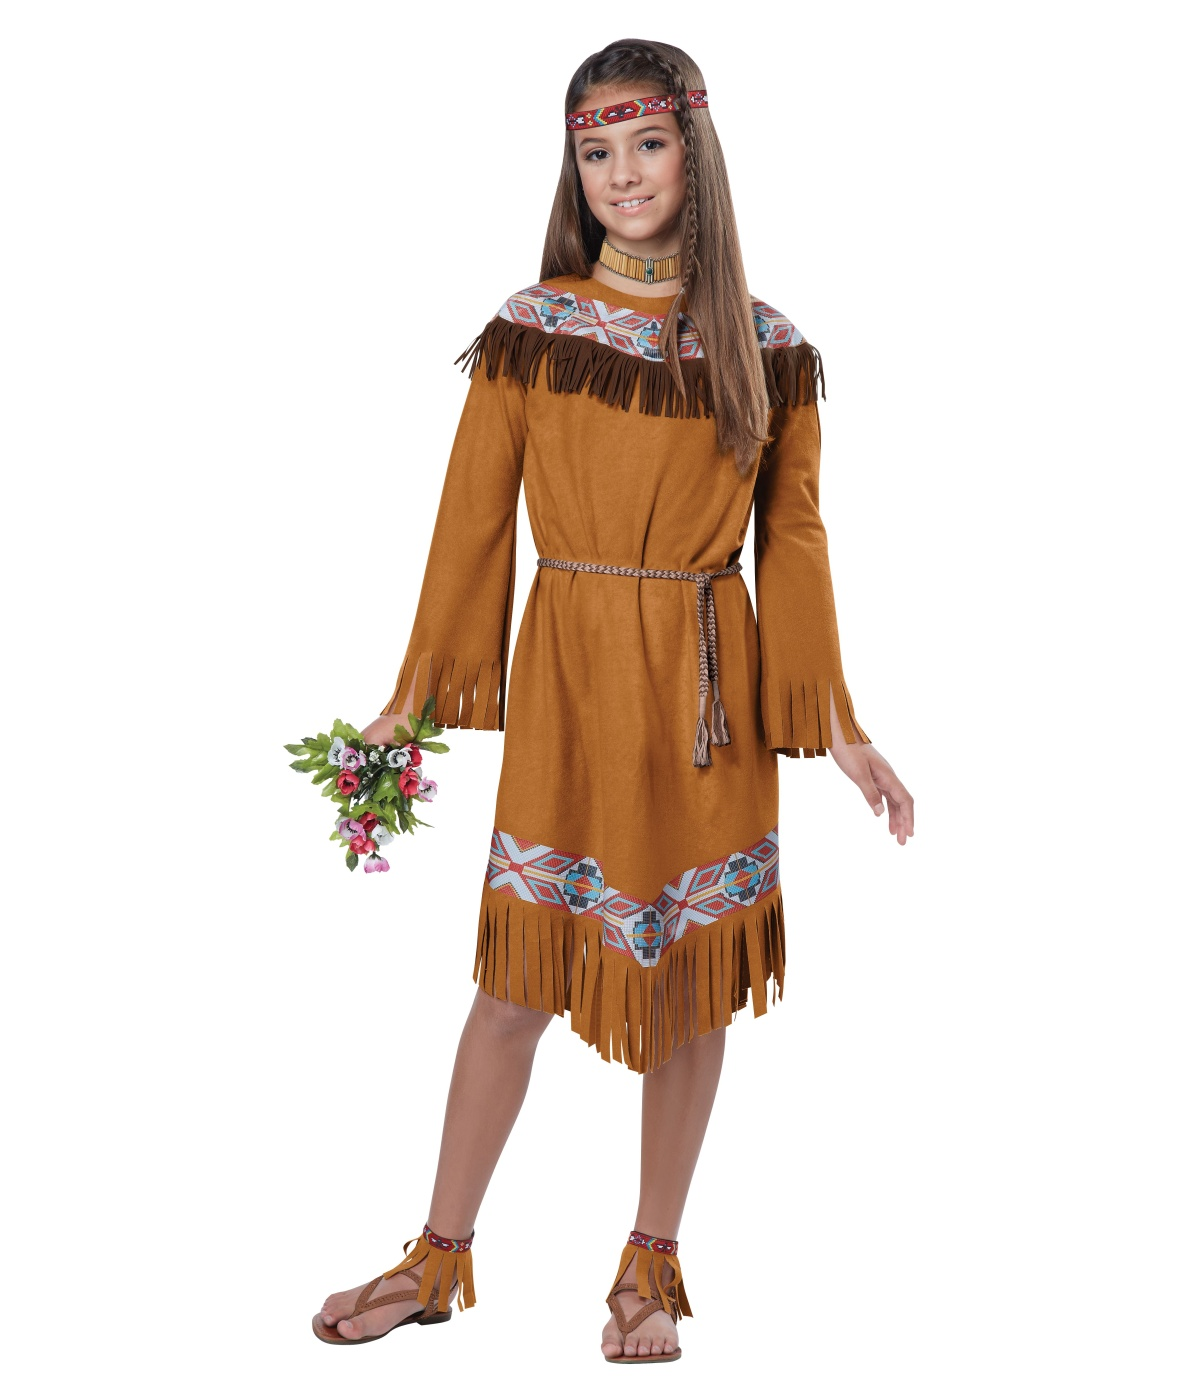 Pocahontas Costumes Costumes for kids, teens & adults.